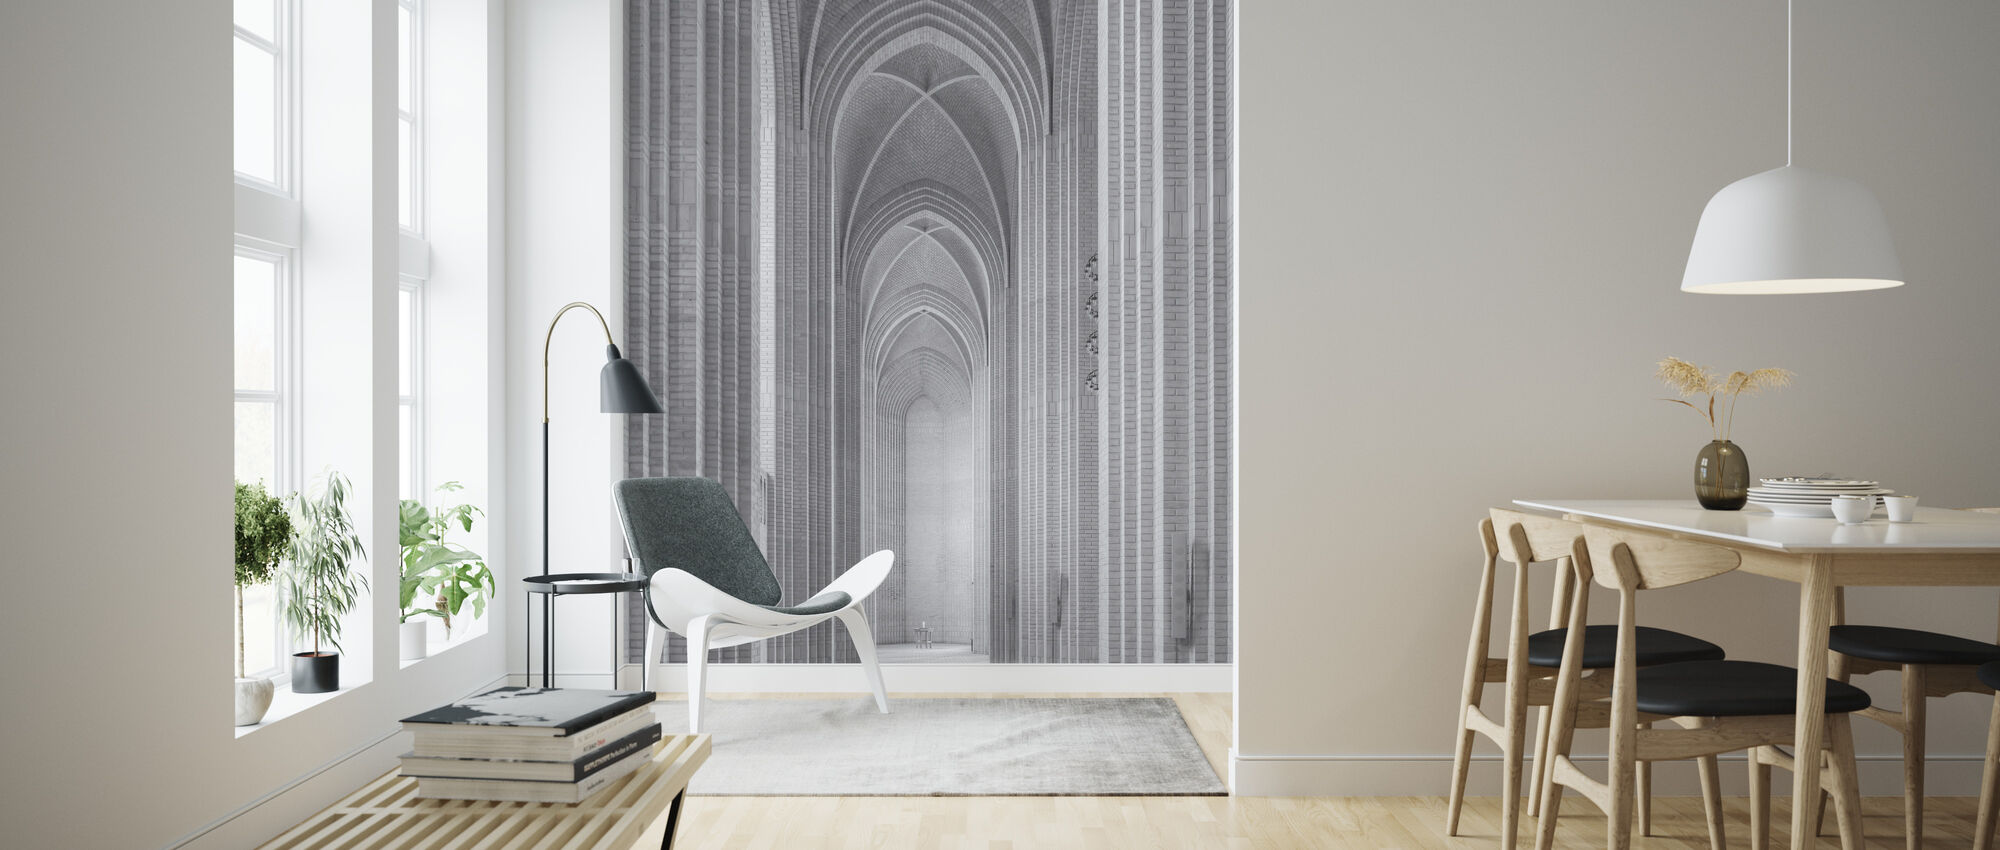 Grundtvig Church - Wallpaper - Living Room